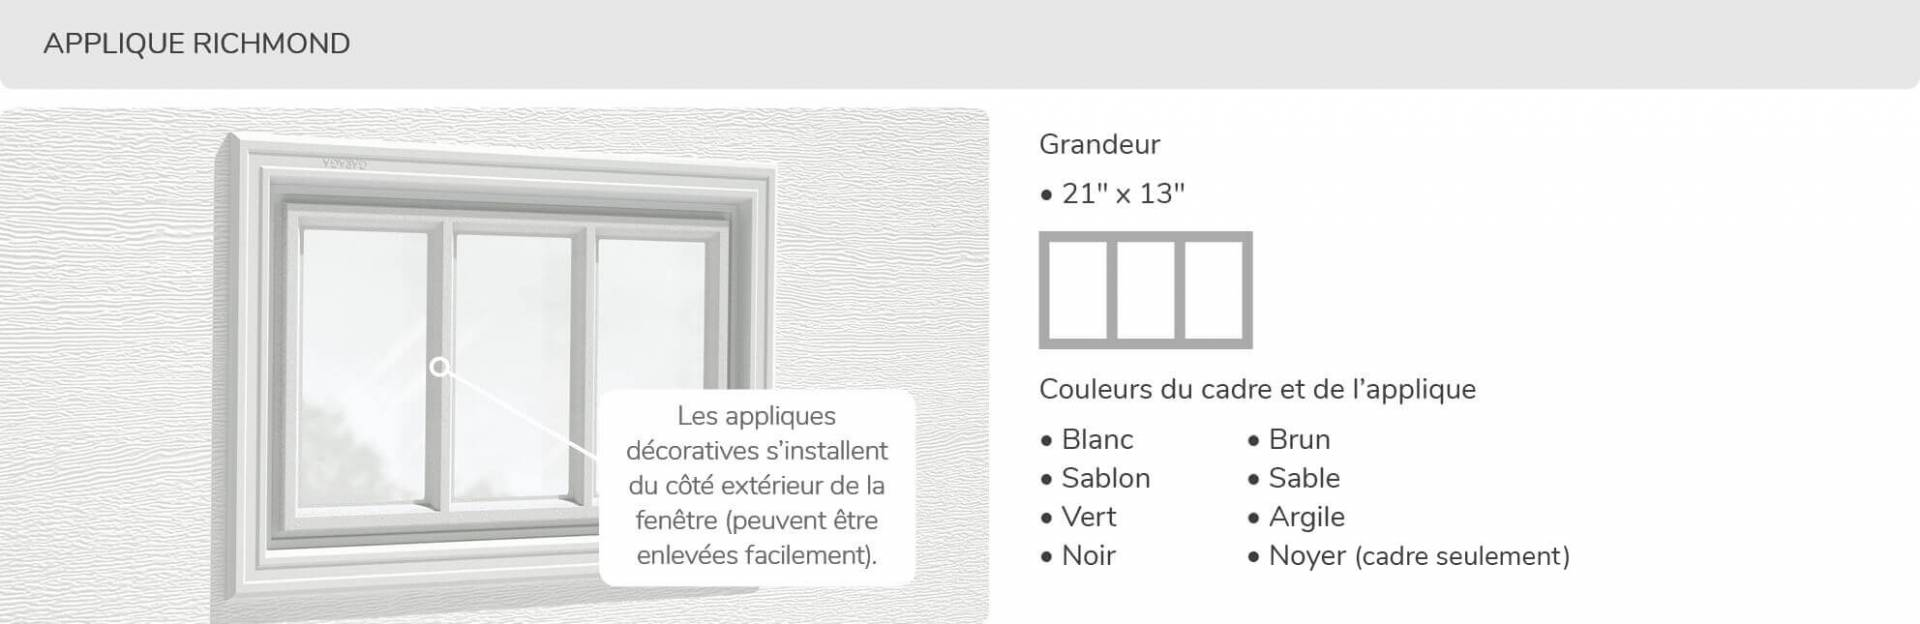 Applique Richmond, 21' x 13', disponible pour la porte R-16